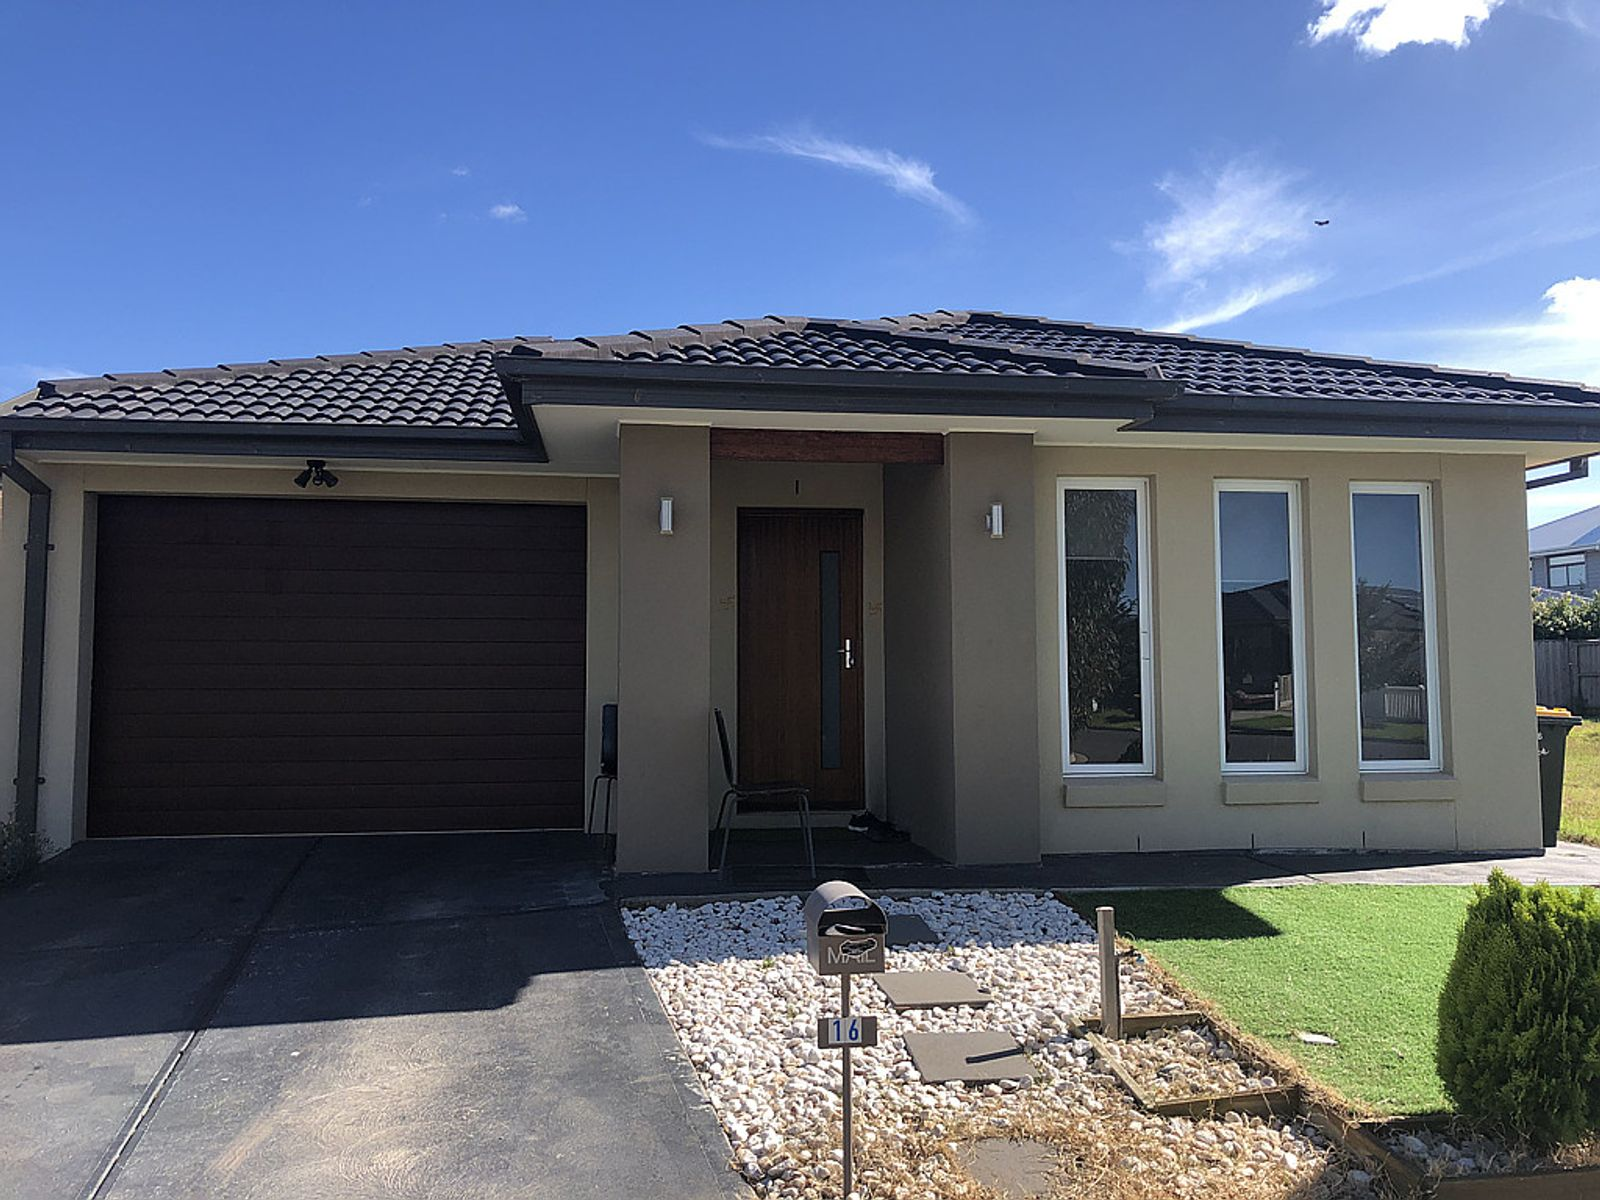 Lot 310 16 Endurance Way, Point Cook, VIC 3030